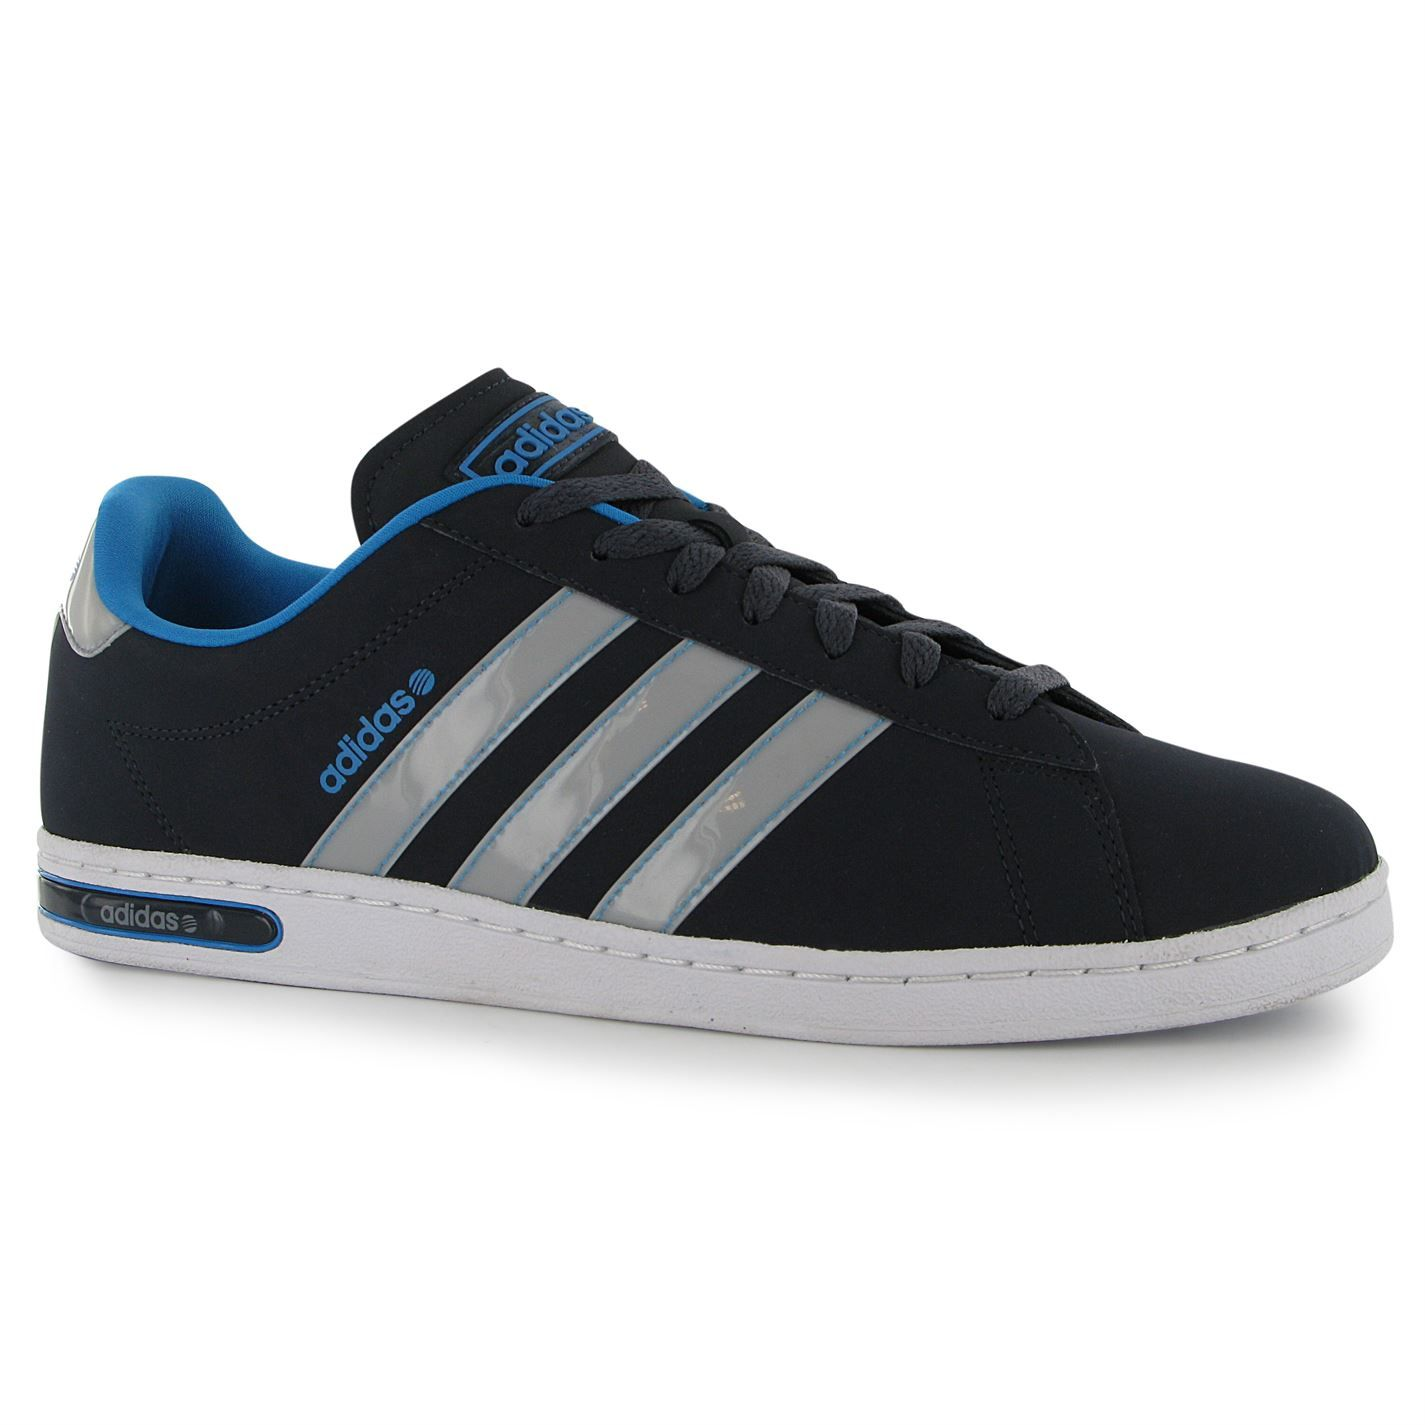 adidas | adidas Derby II Mens Trainers | Mens Trainers